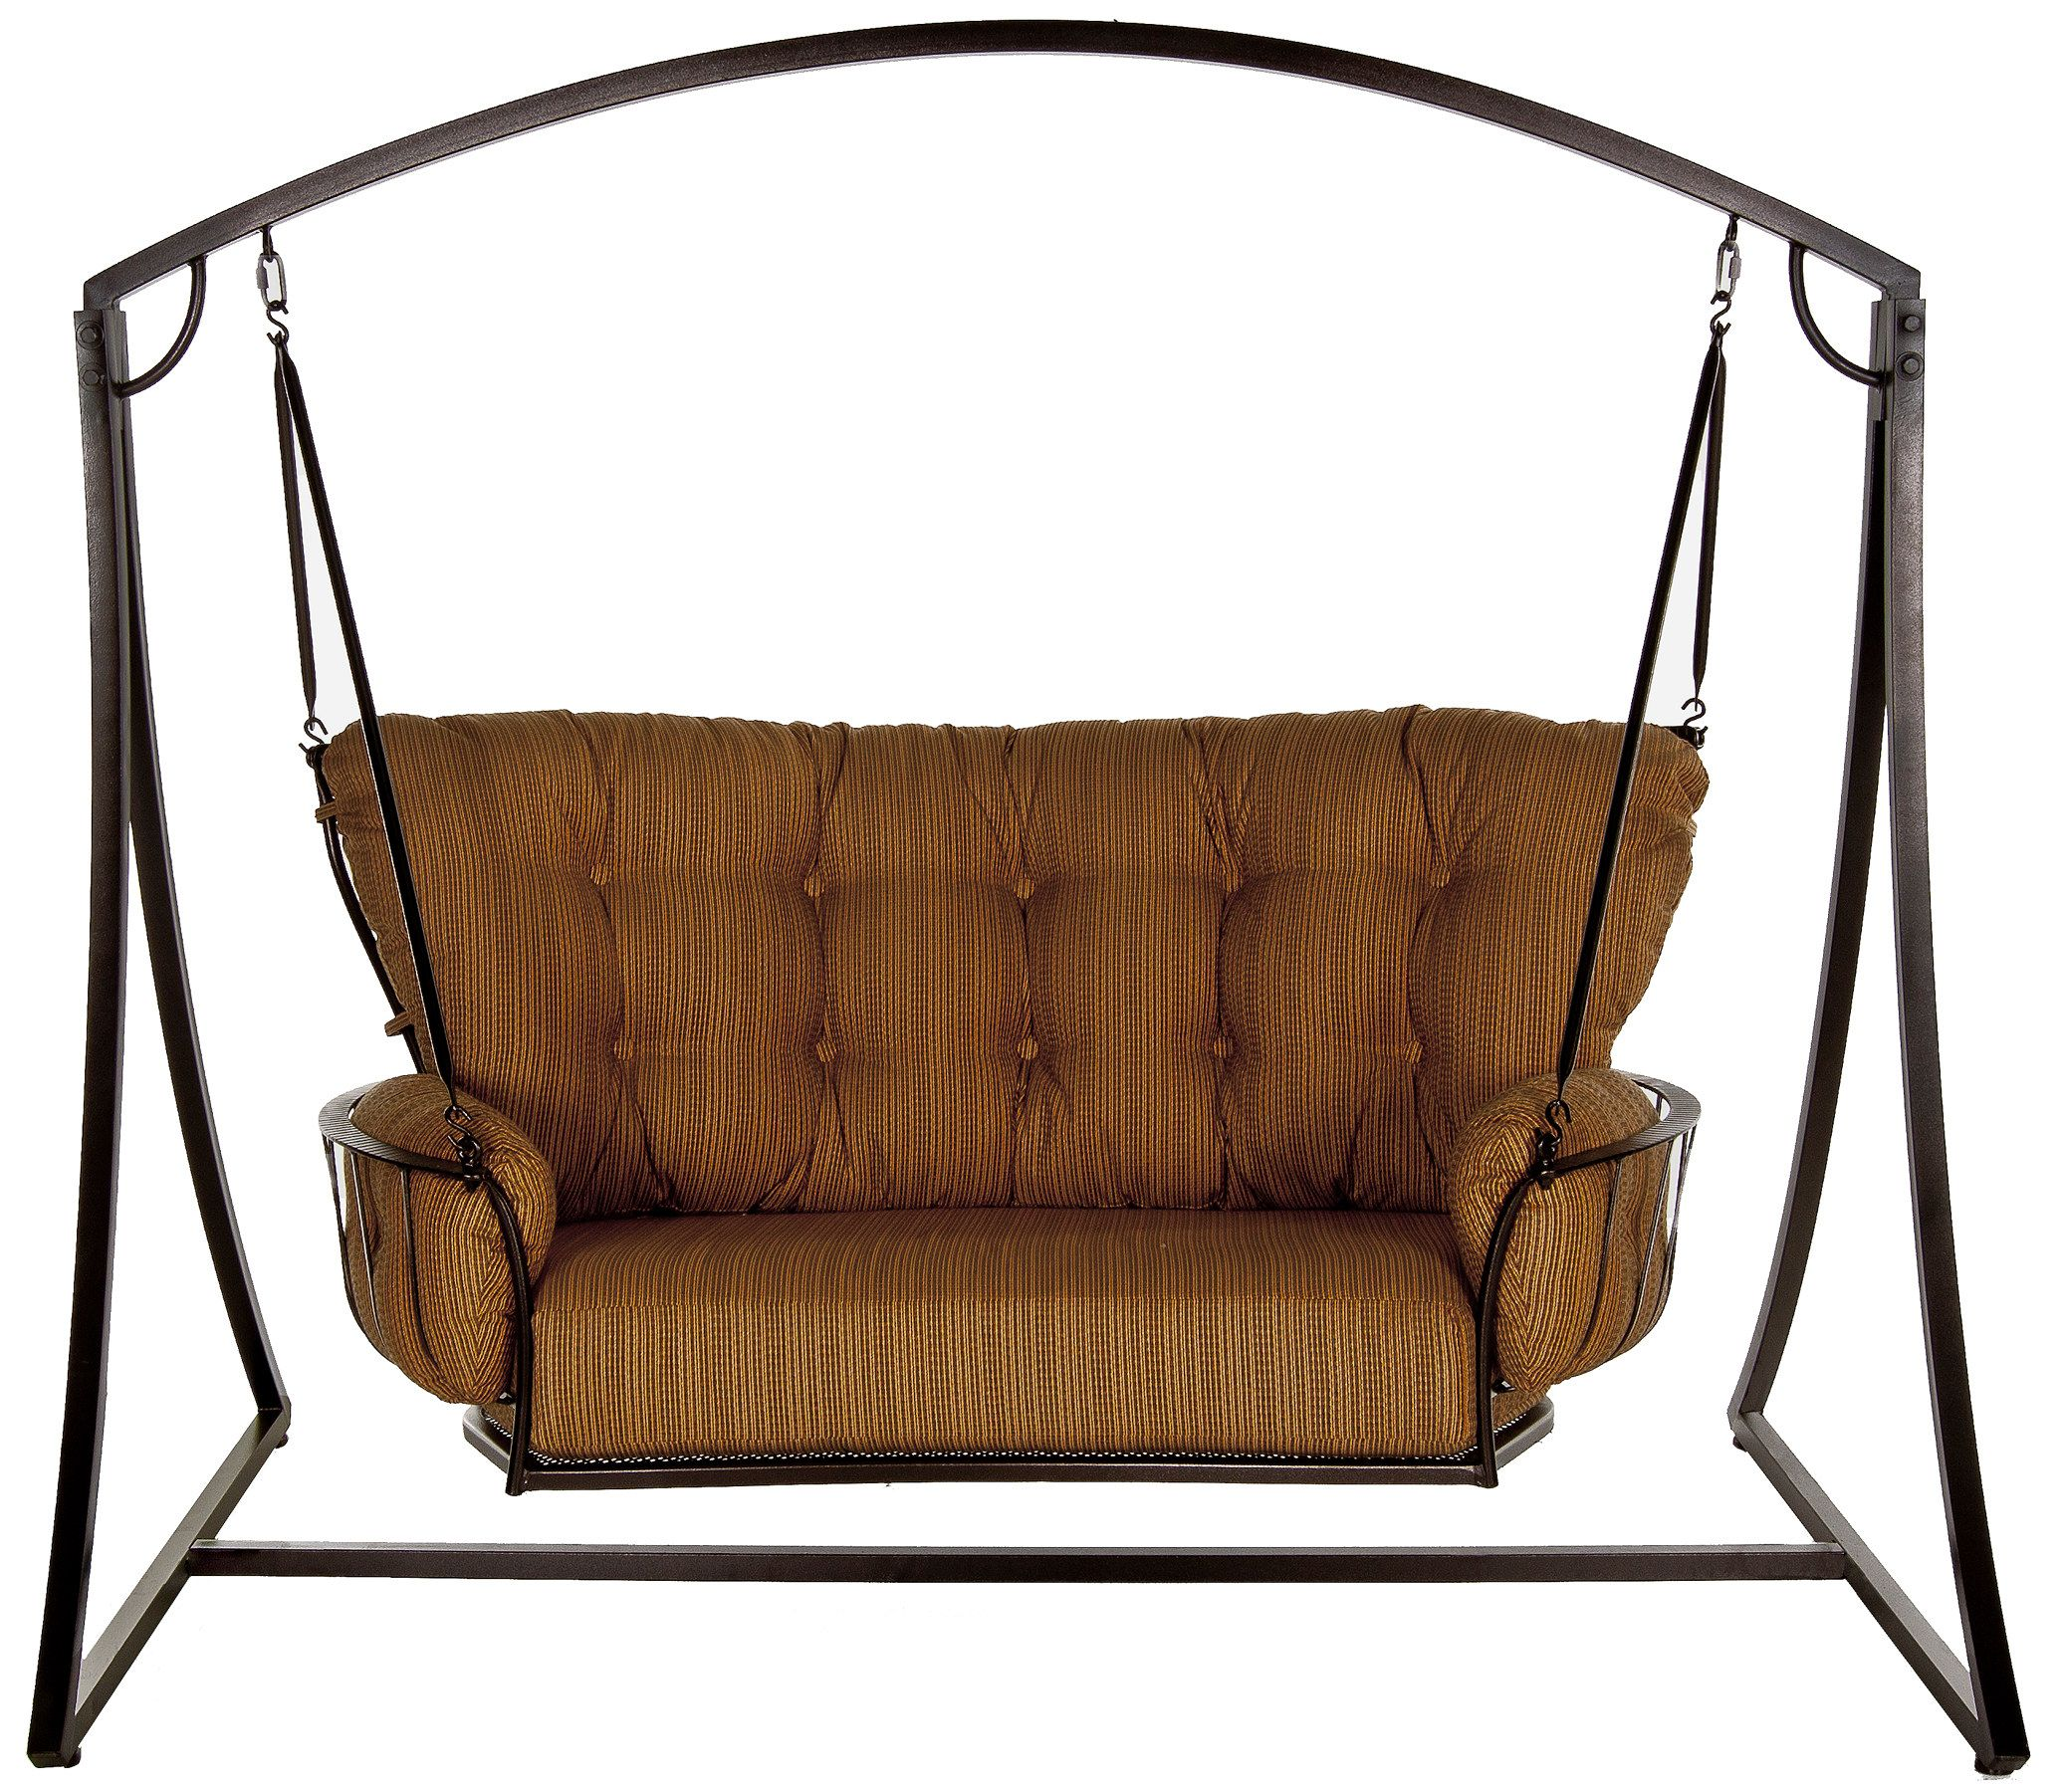 OW Lee Monterra Cuddle Swing Frame with Cuddle Swing